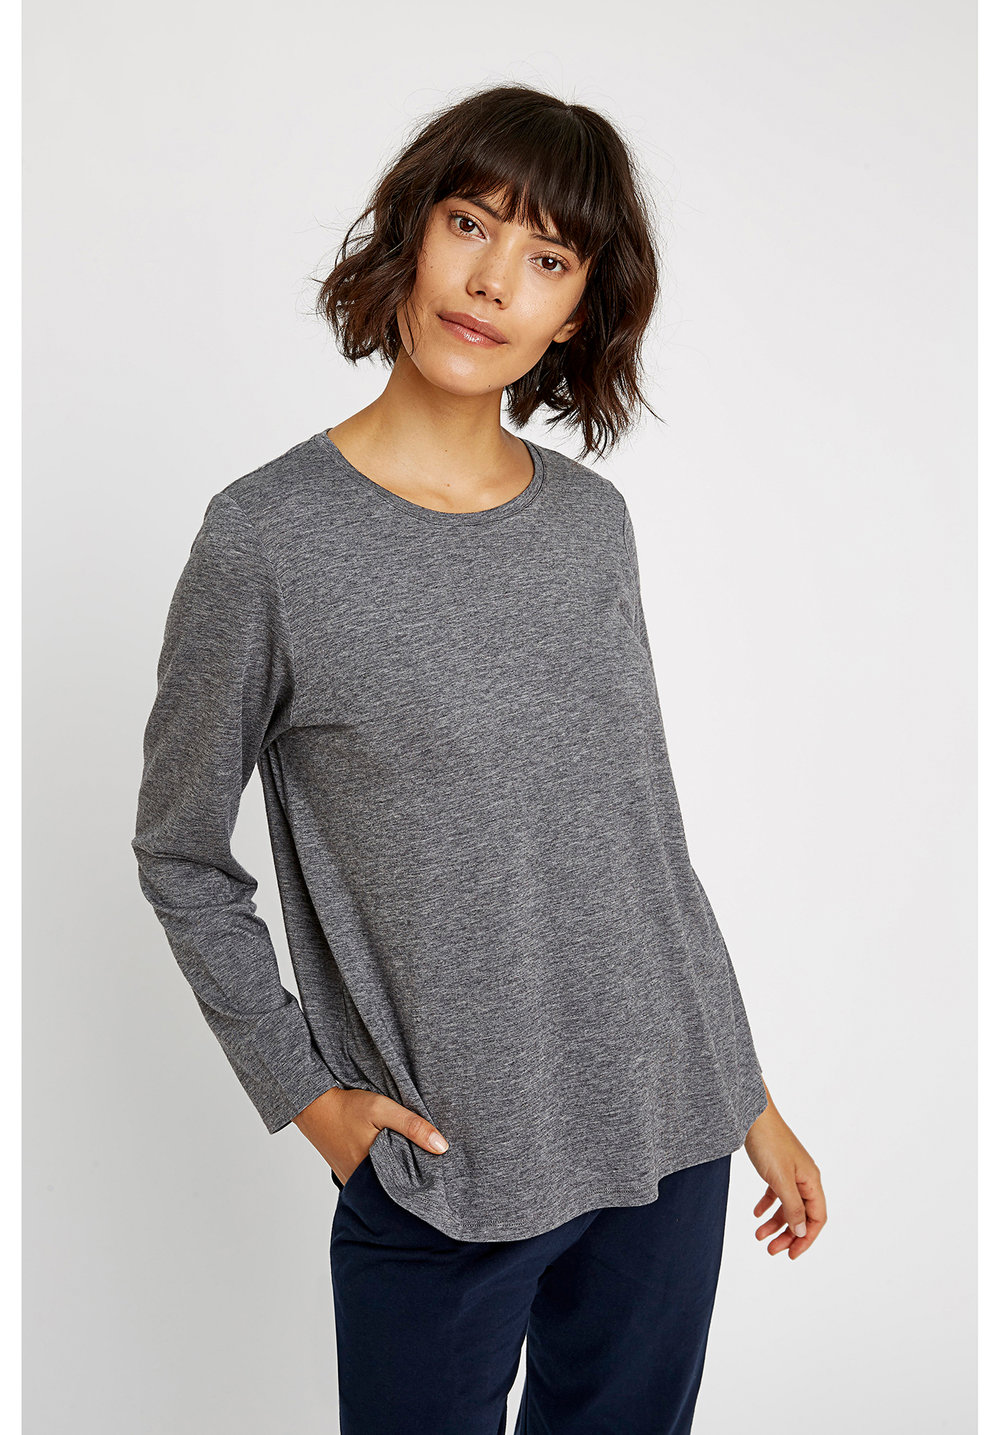 Peopletree Amara Top